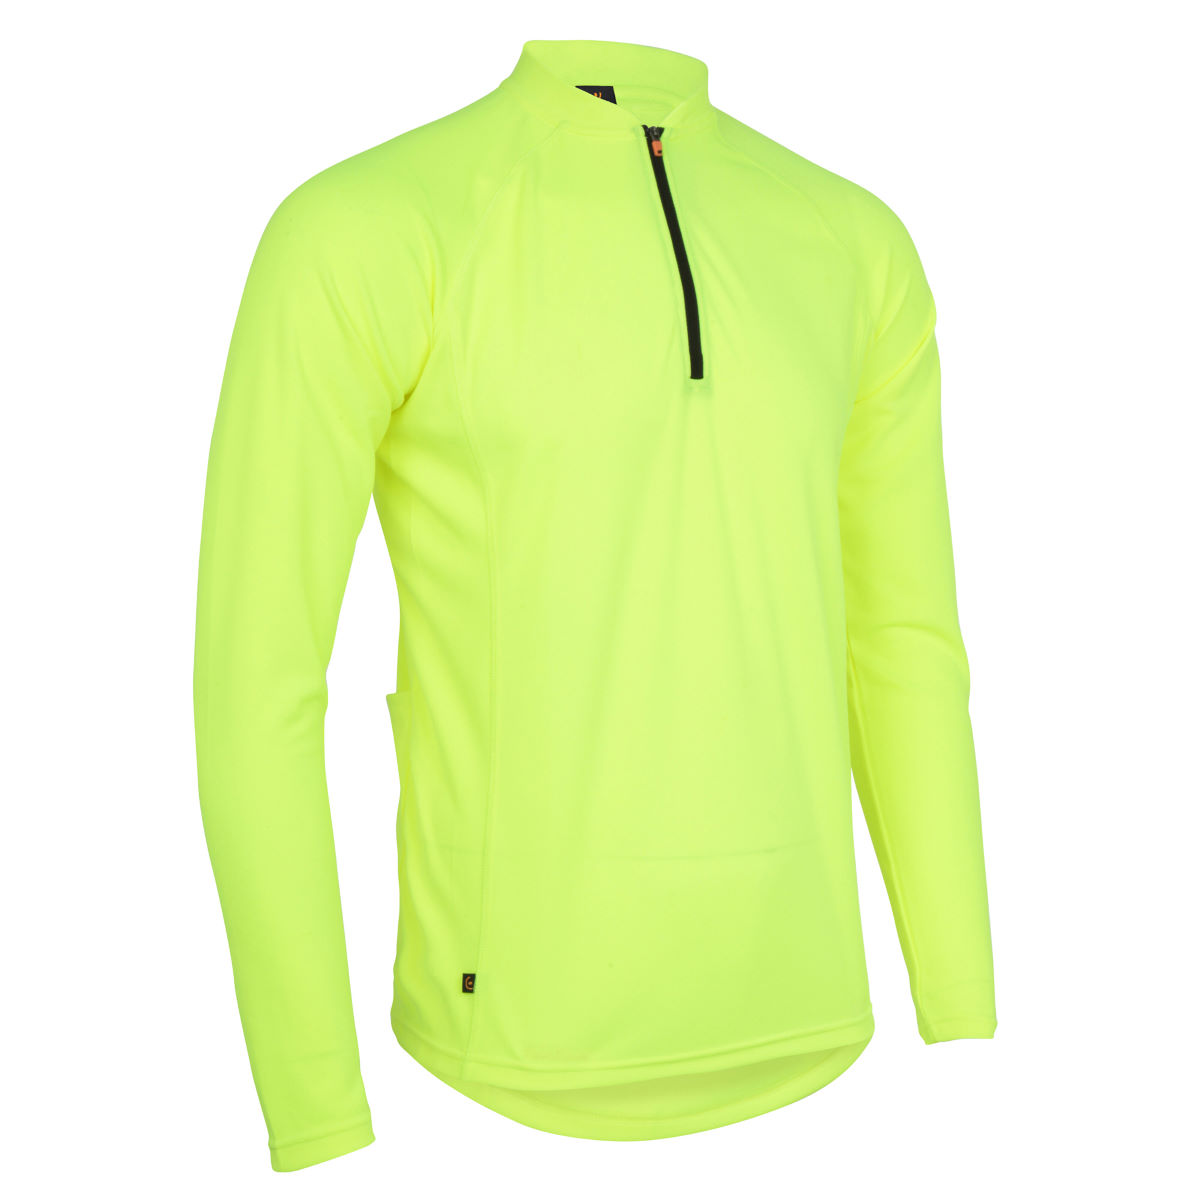 Maillot Wiggle Essentials (manches longues) - S Neon